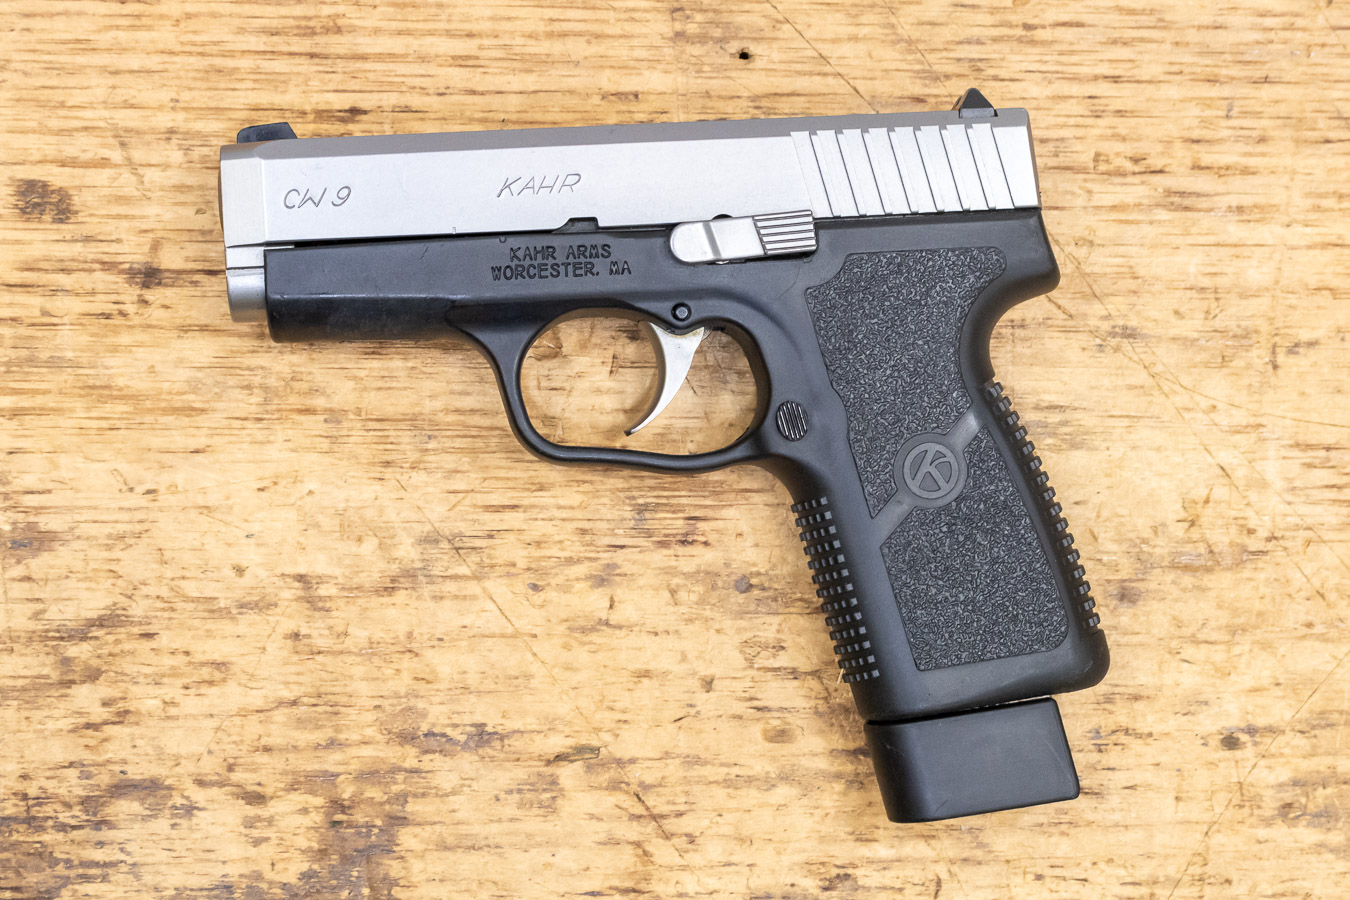 CW9 9MM 7-ROUND USED TRADE-IN PISTOL